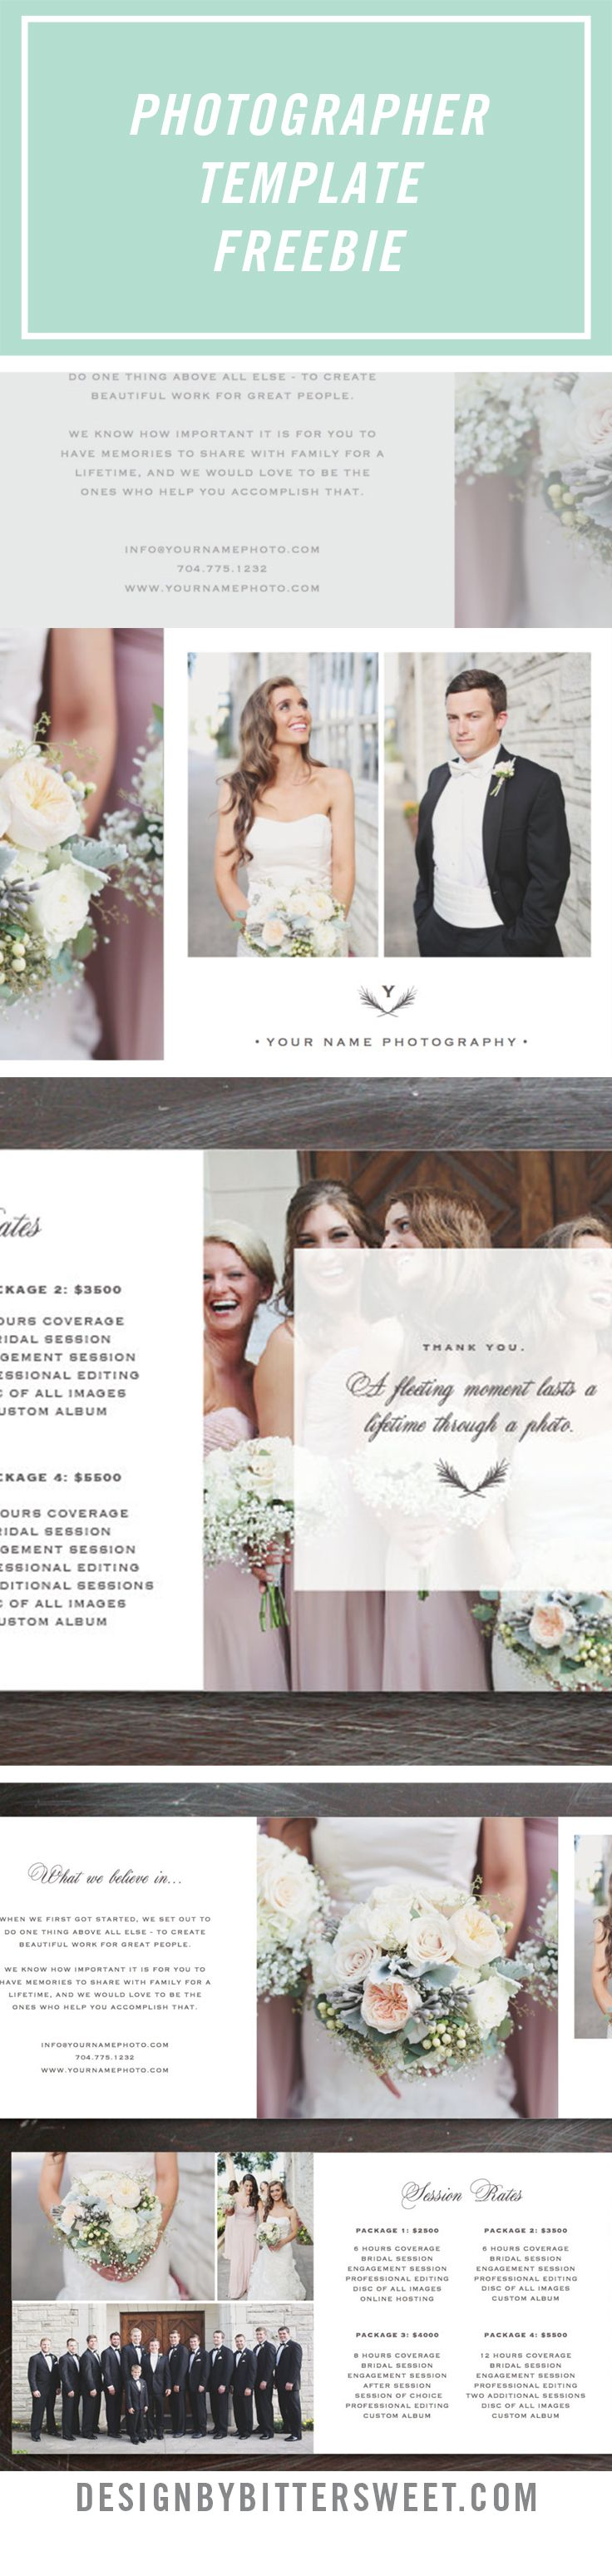 Free Photography Template Wedding